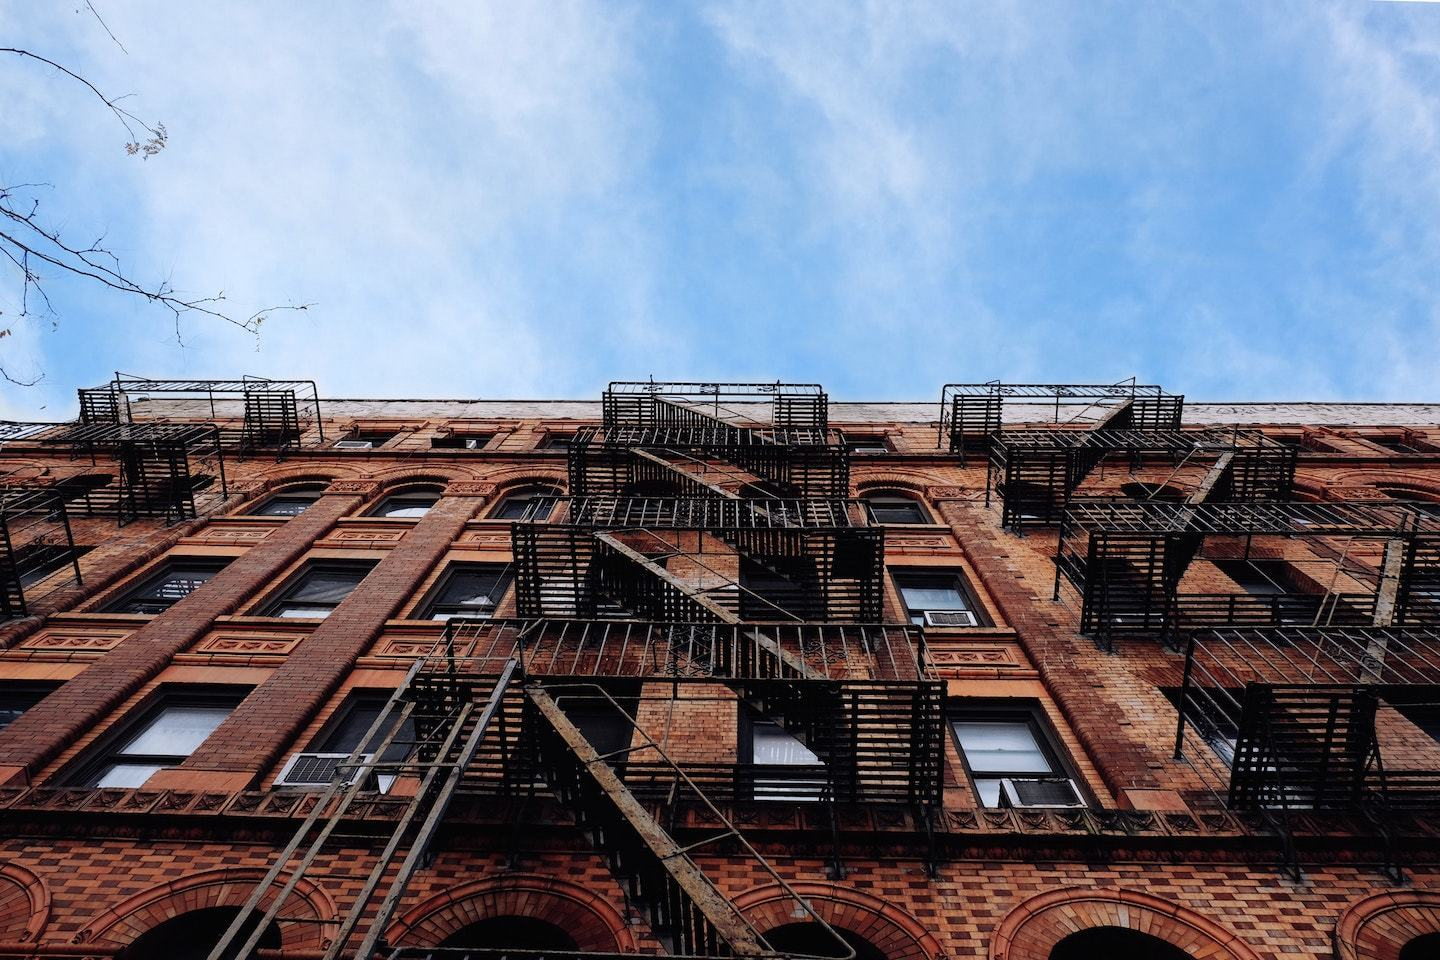 upward view of brick apartments and sky